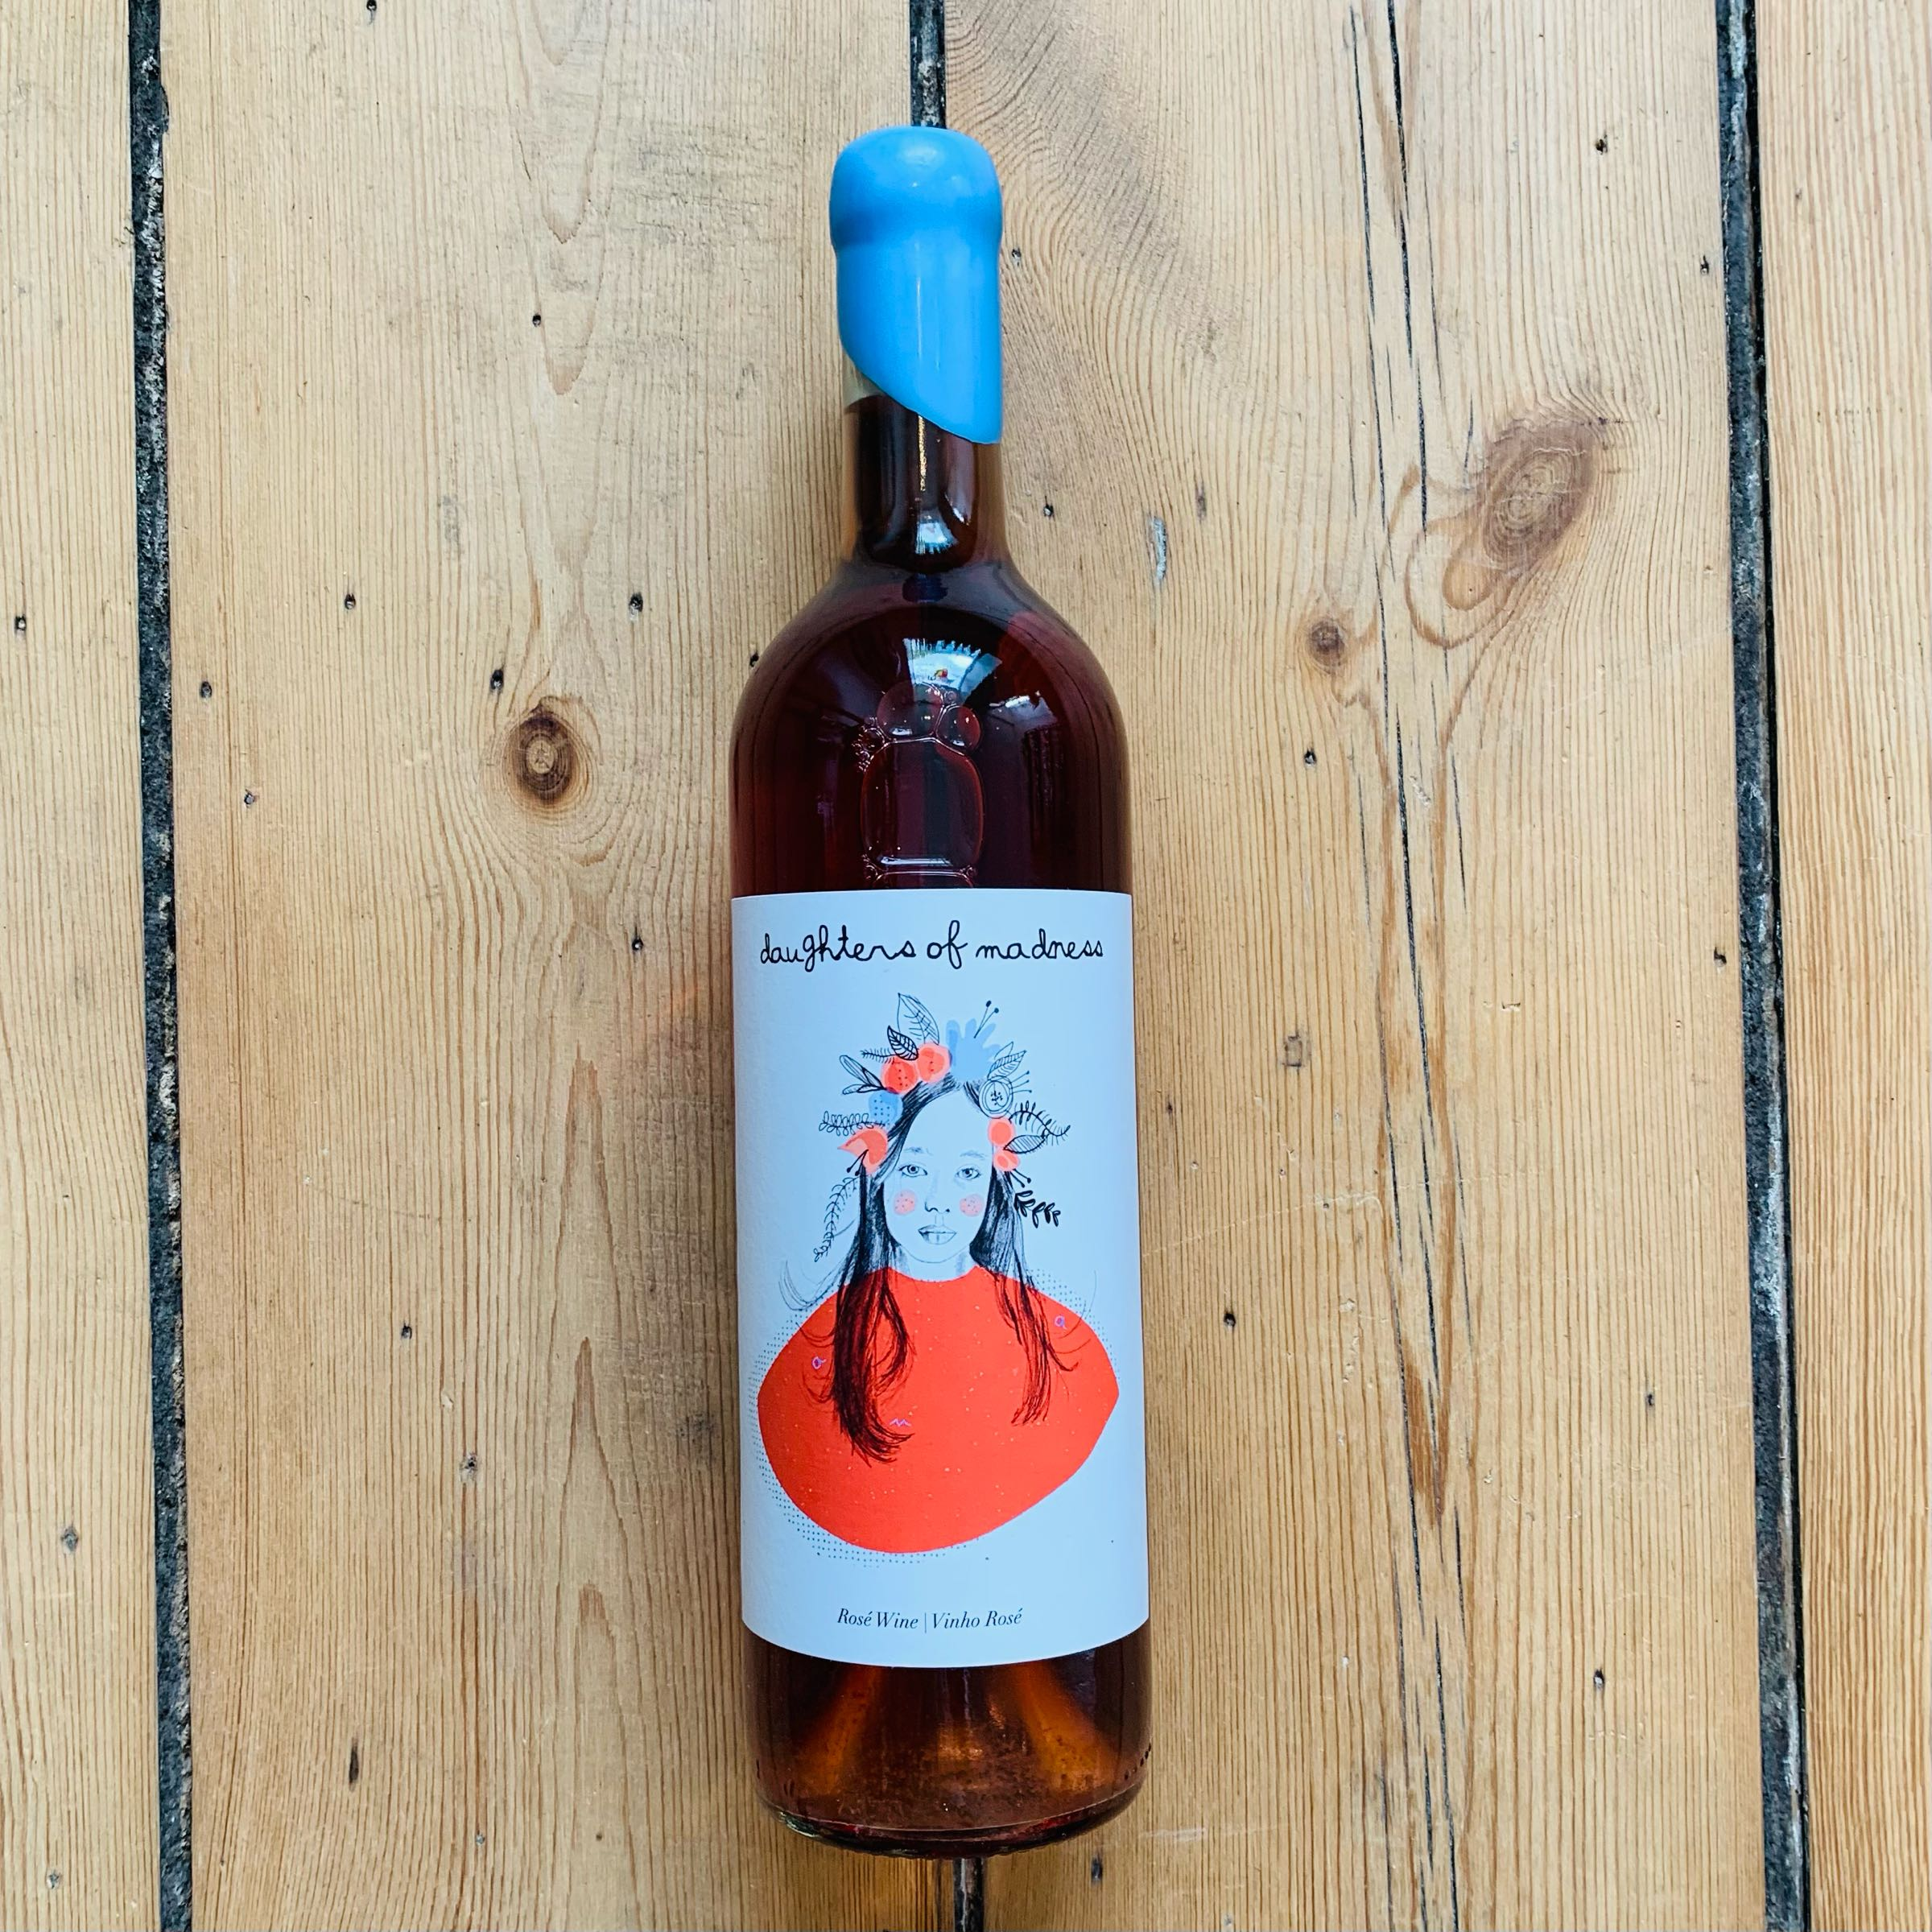 Daughters of Madness Ava Rosé 2019